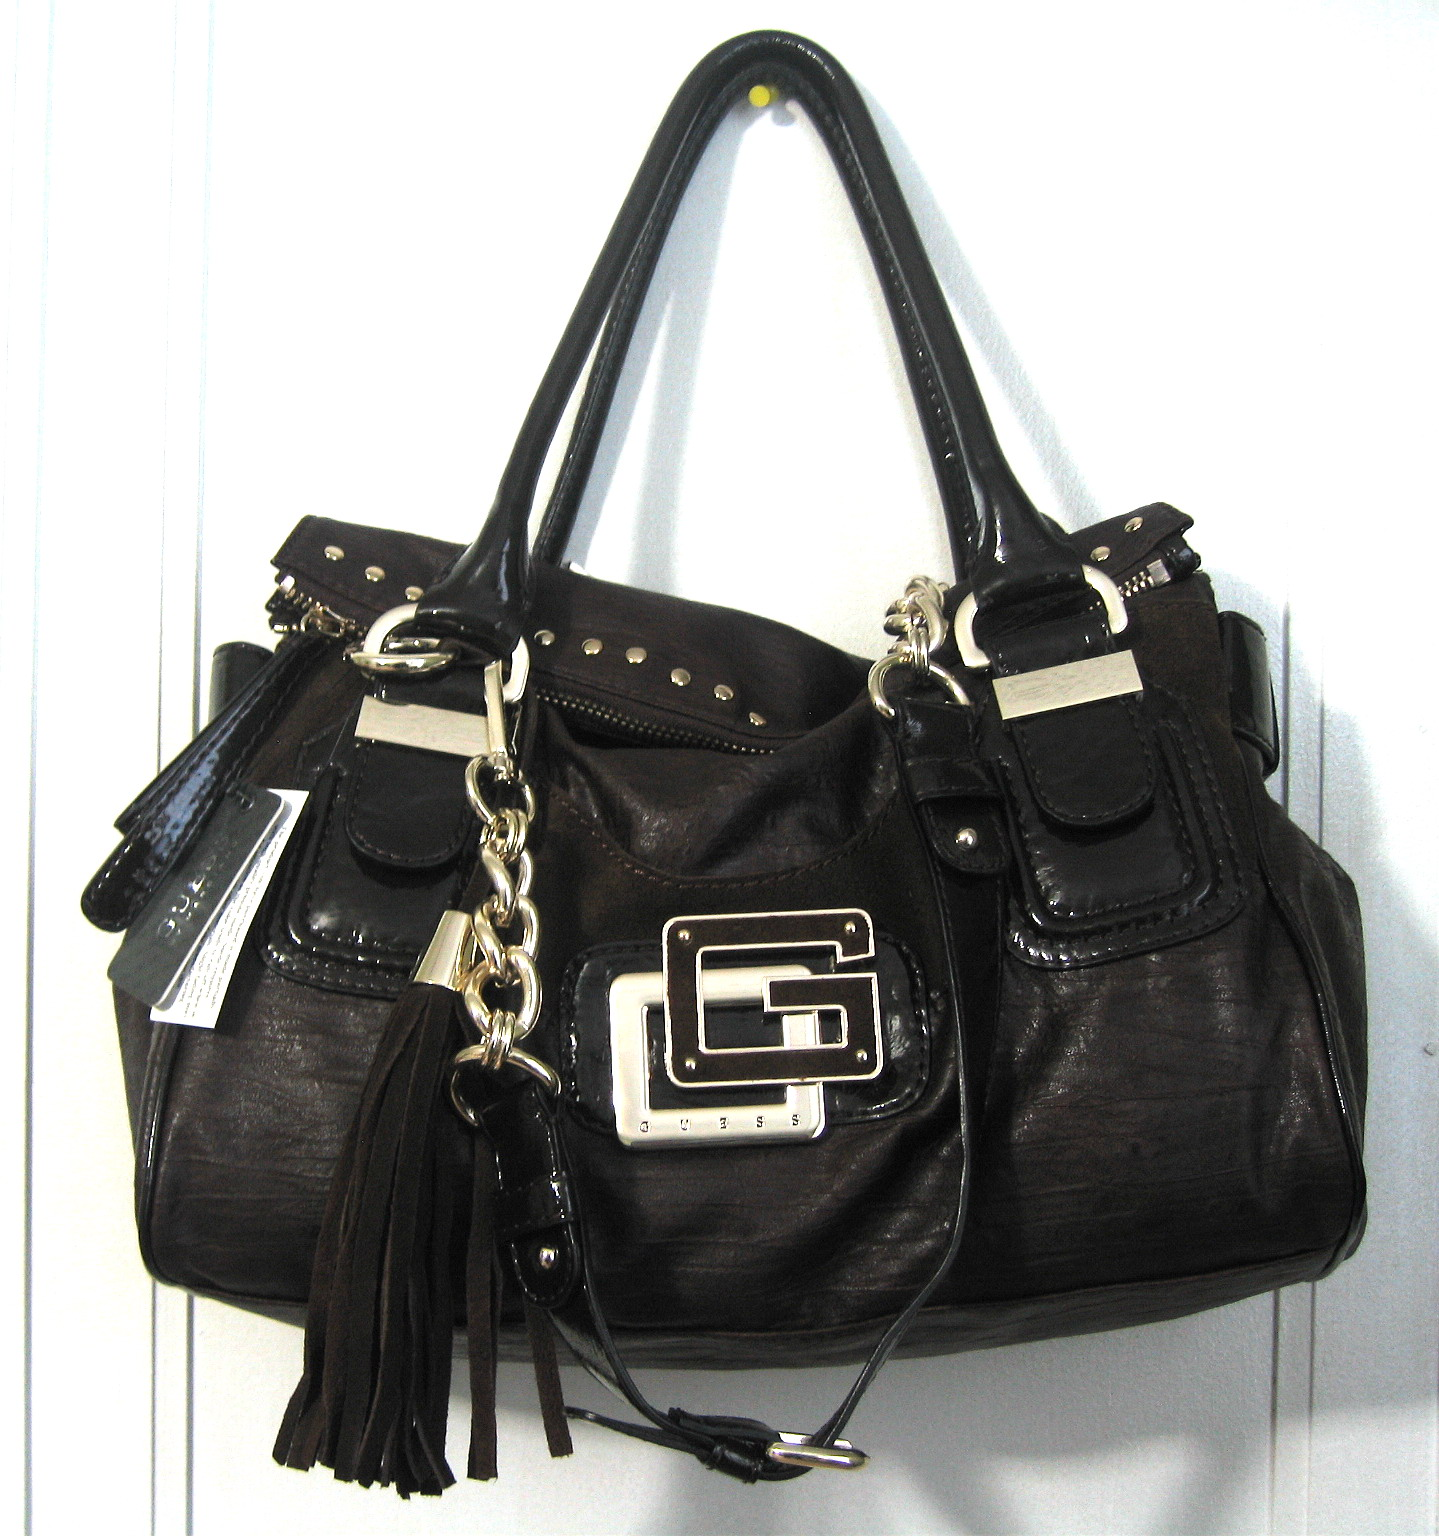 Boutique Malaysia: GUESS 'DREAM' TOTE/SHOULDER BAG